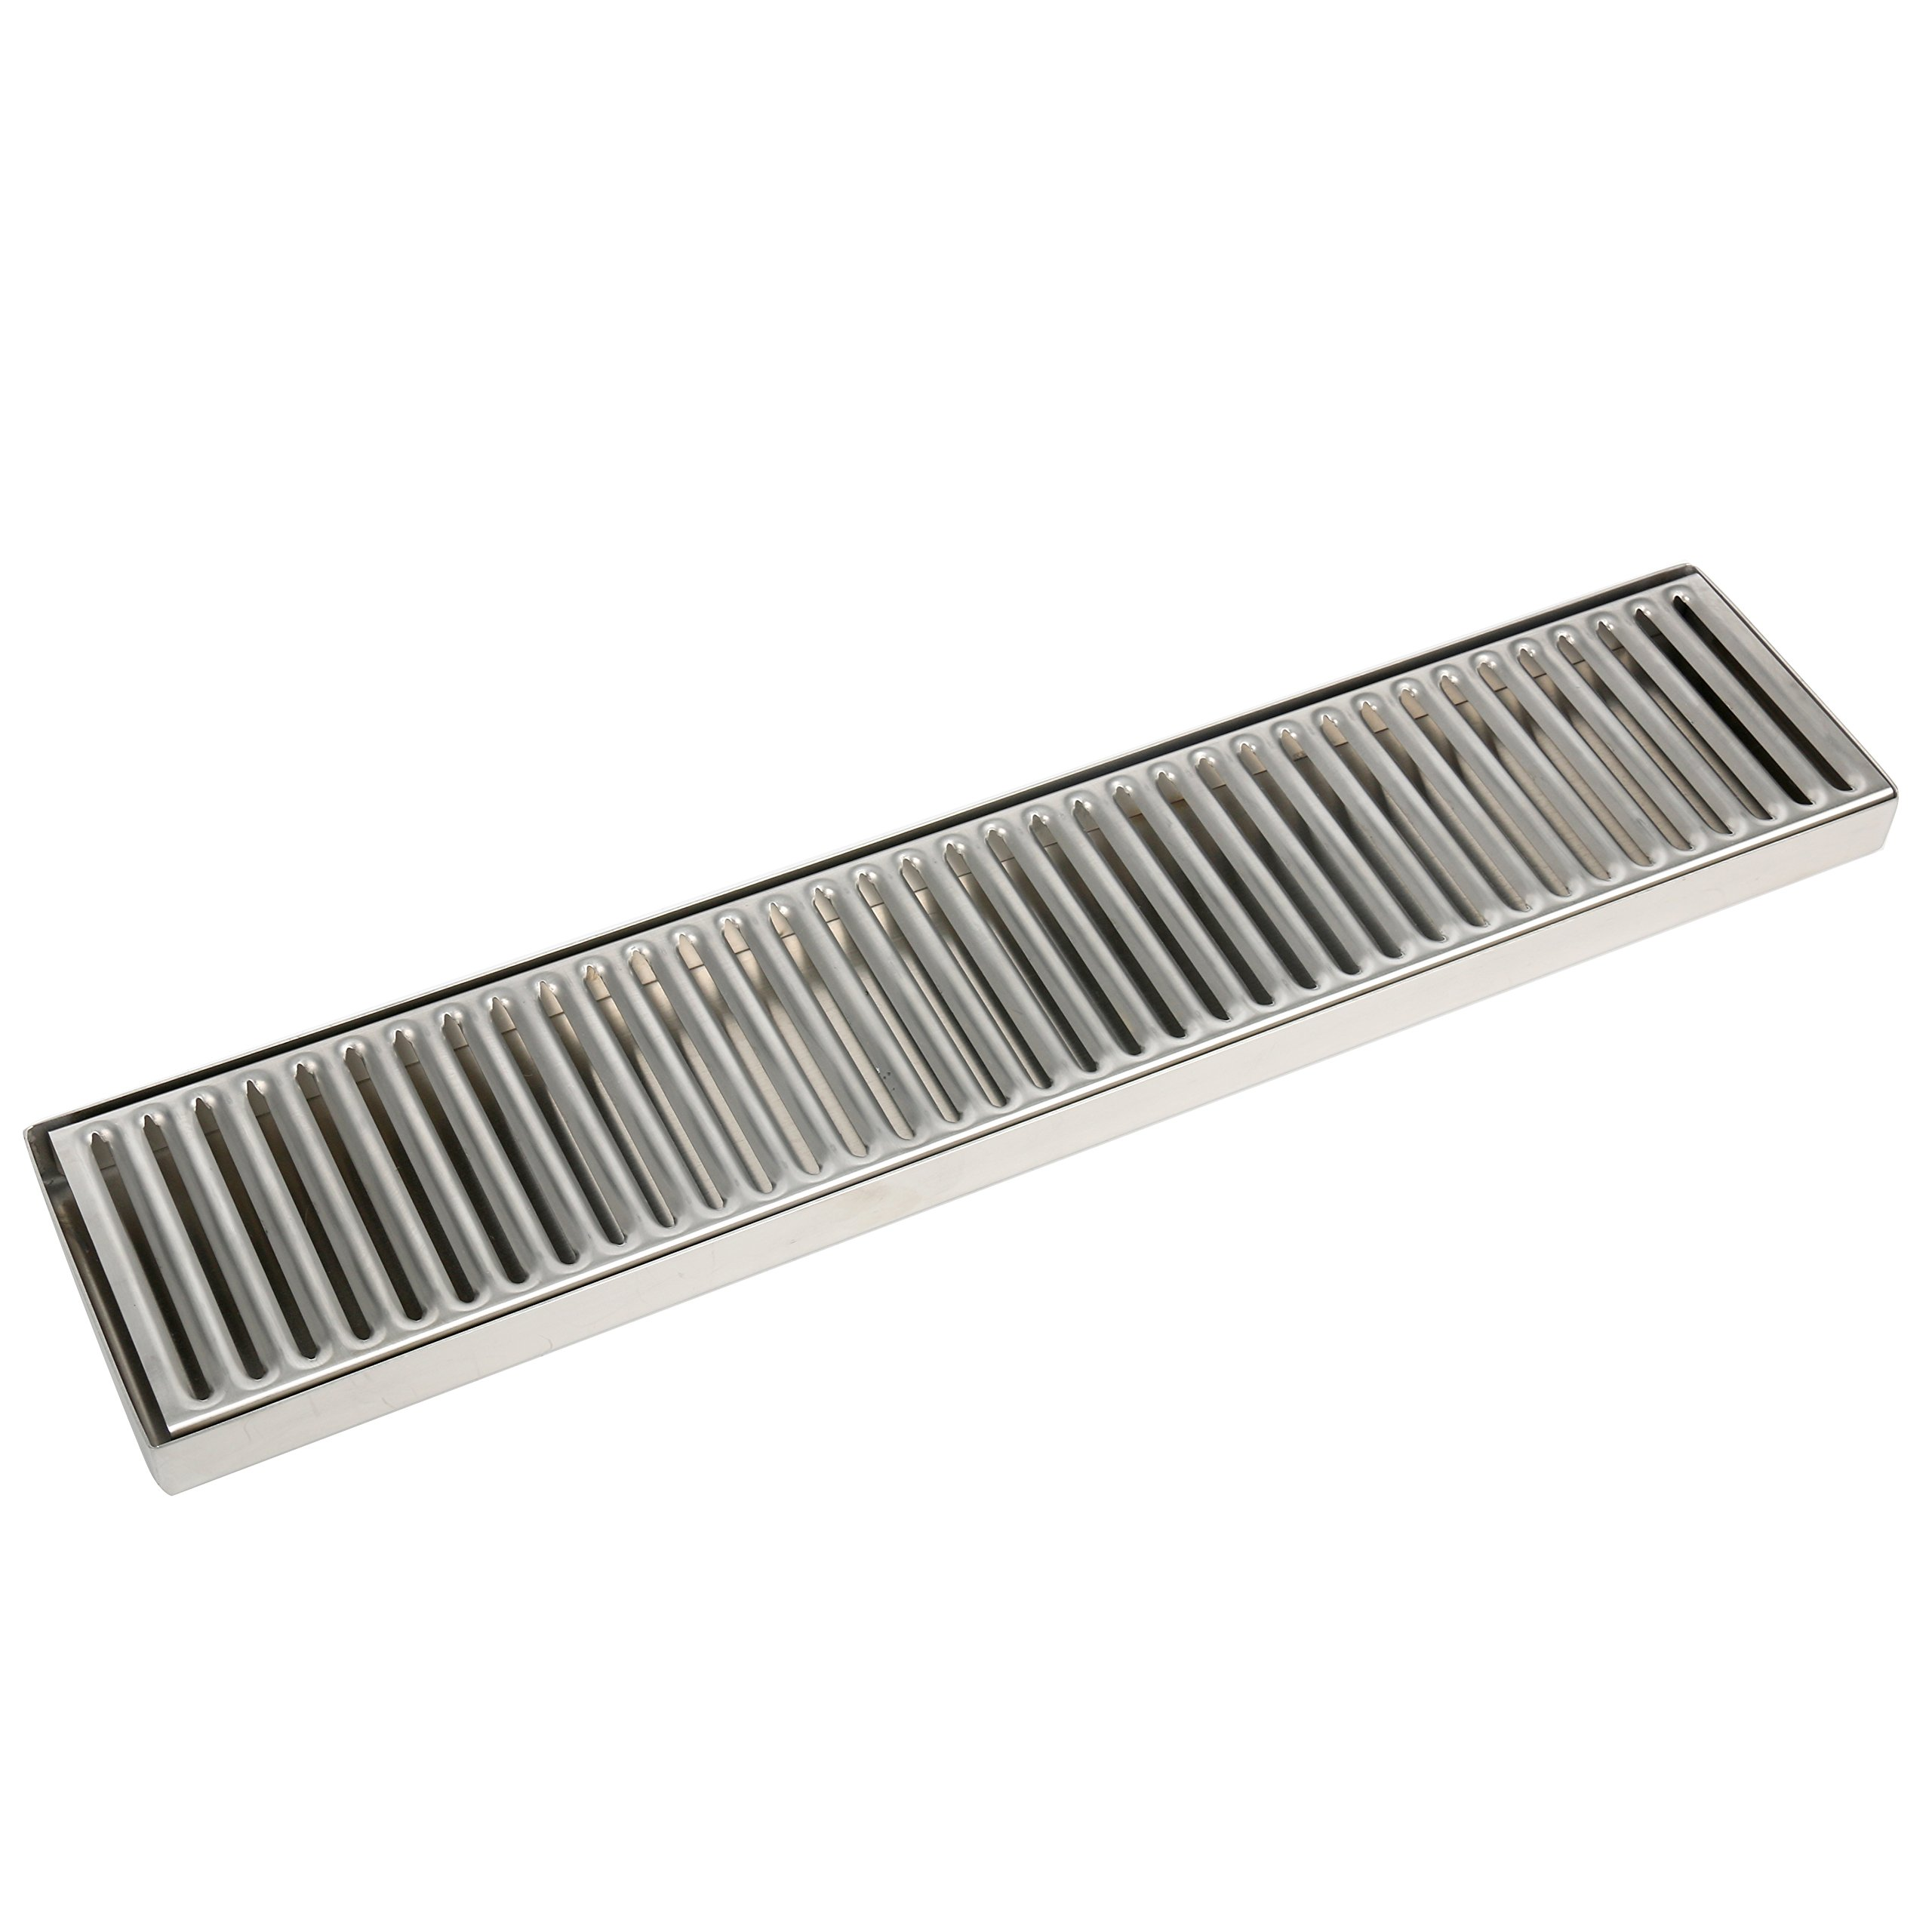 YaeBrew 19'' Length 4'' Width Rectangular Stainless Steel Beer Surface Mount Drip Tray, No Drain, Silver